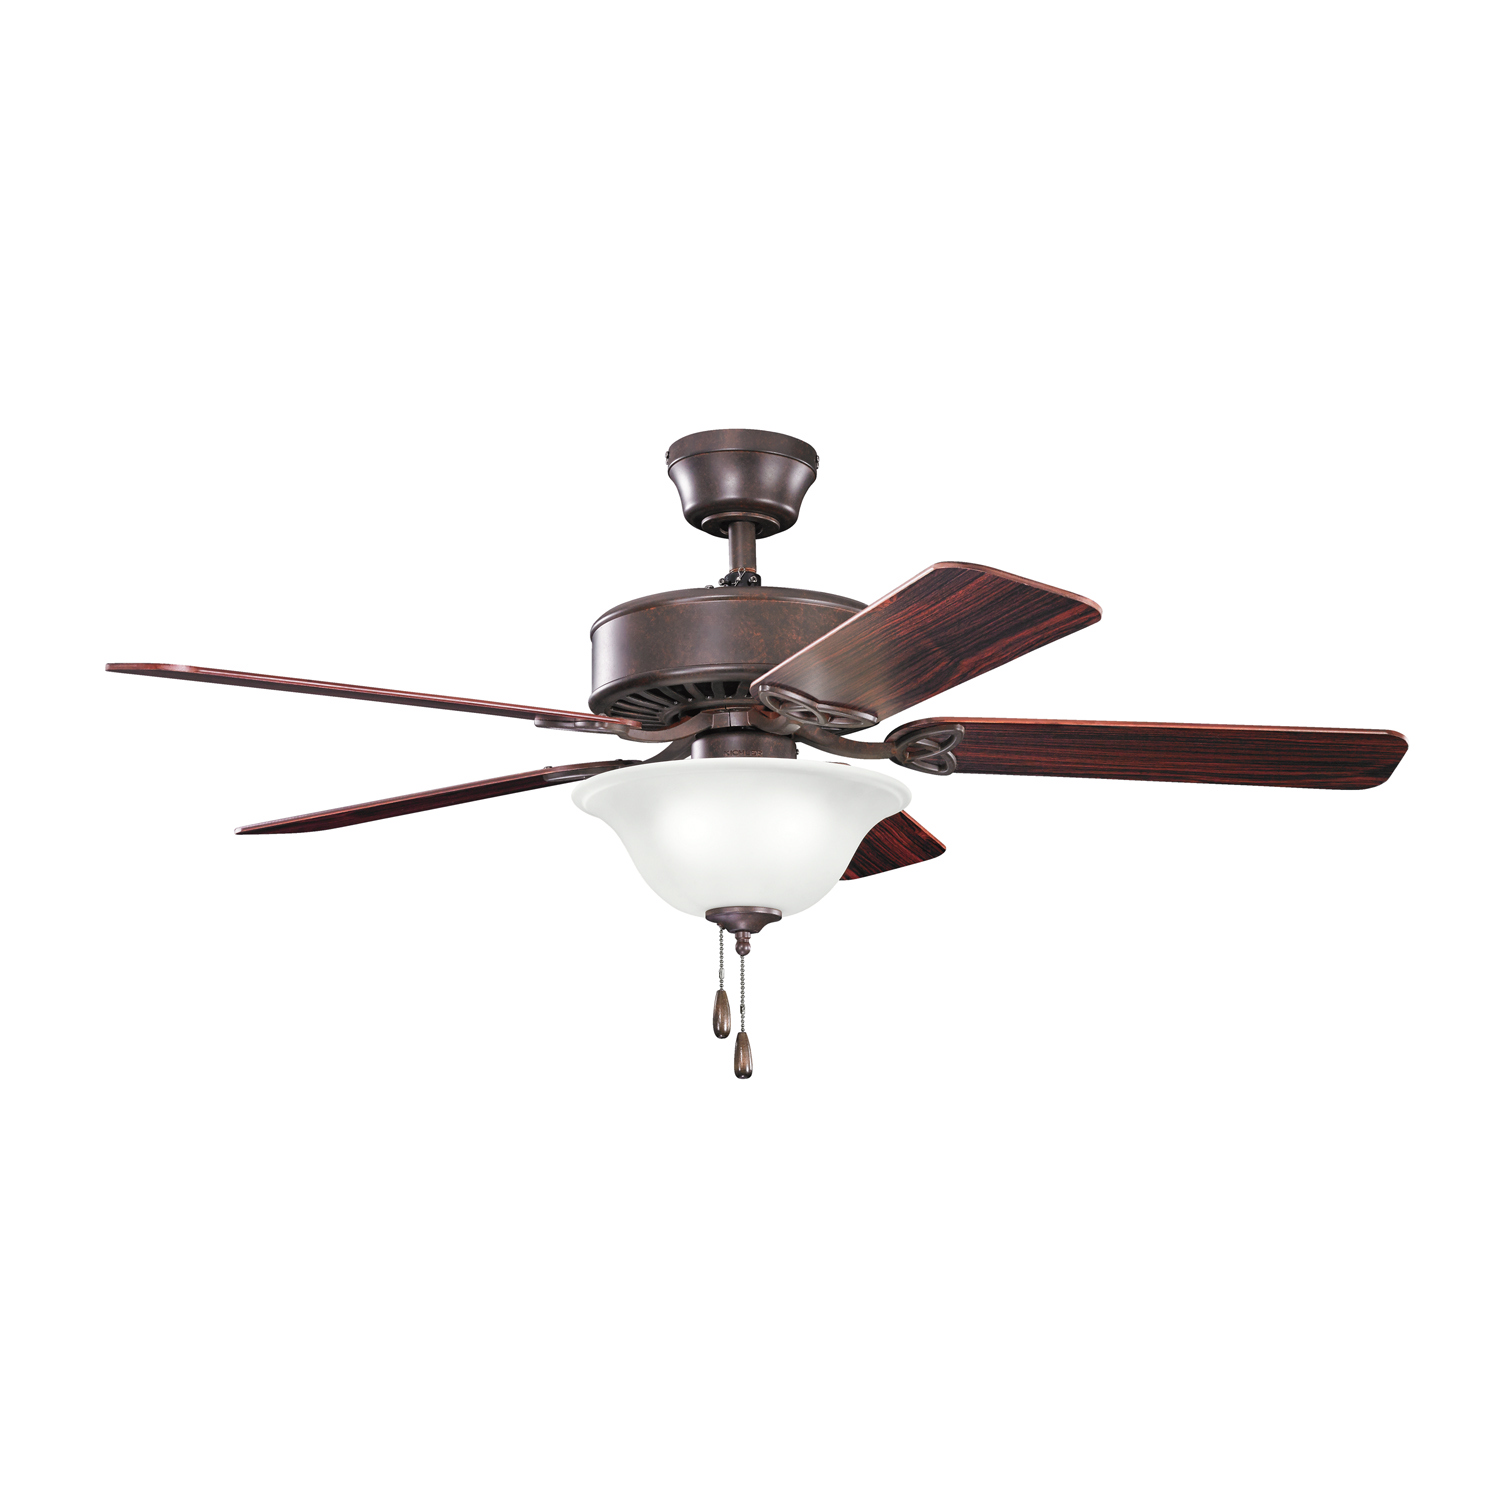 50 inchCeiling Fan from the Renew Select collection by Kichler 330110TZ